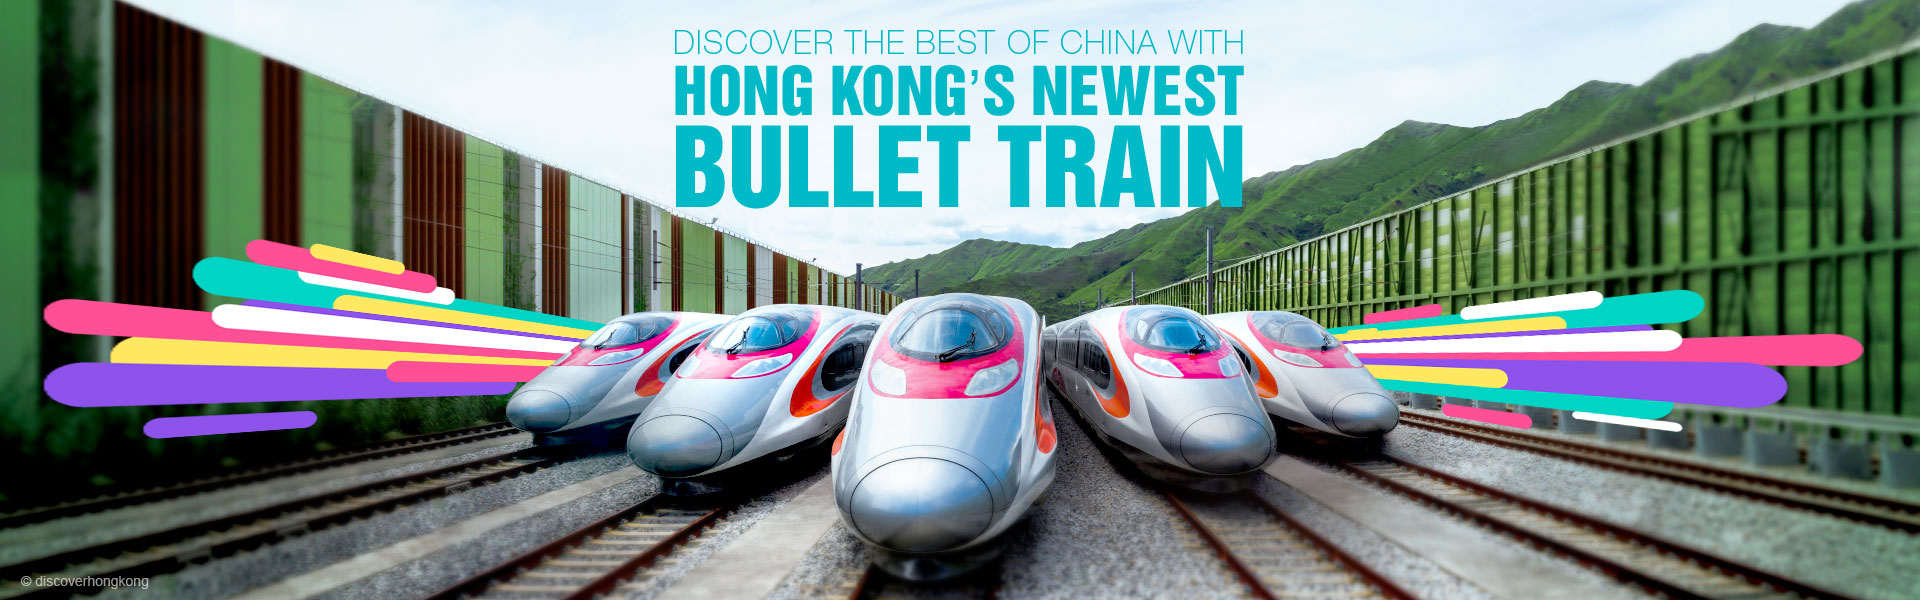 Discover the Best of China with Hong Kong's Newest Bullet Train-cta